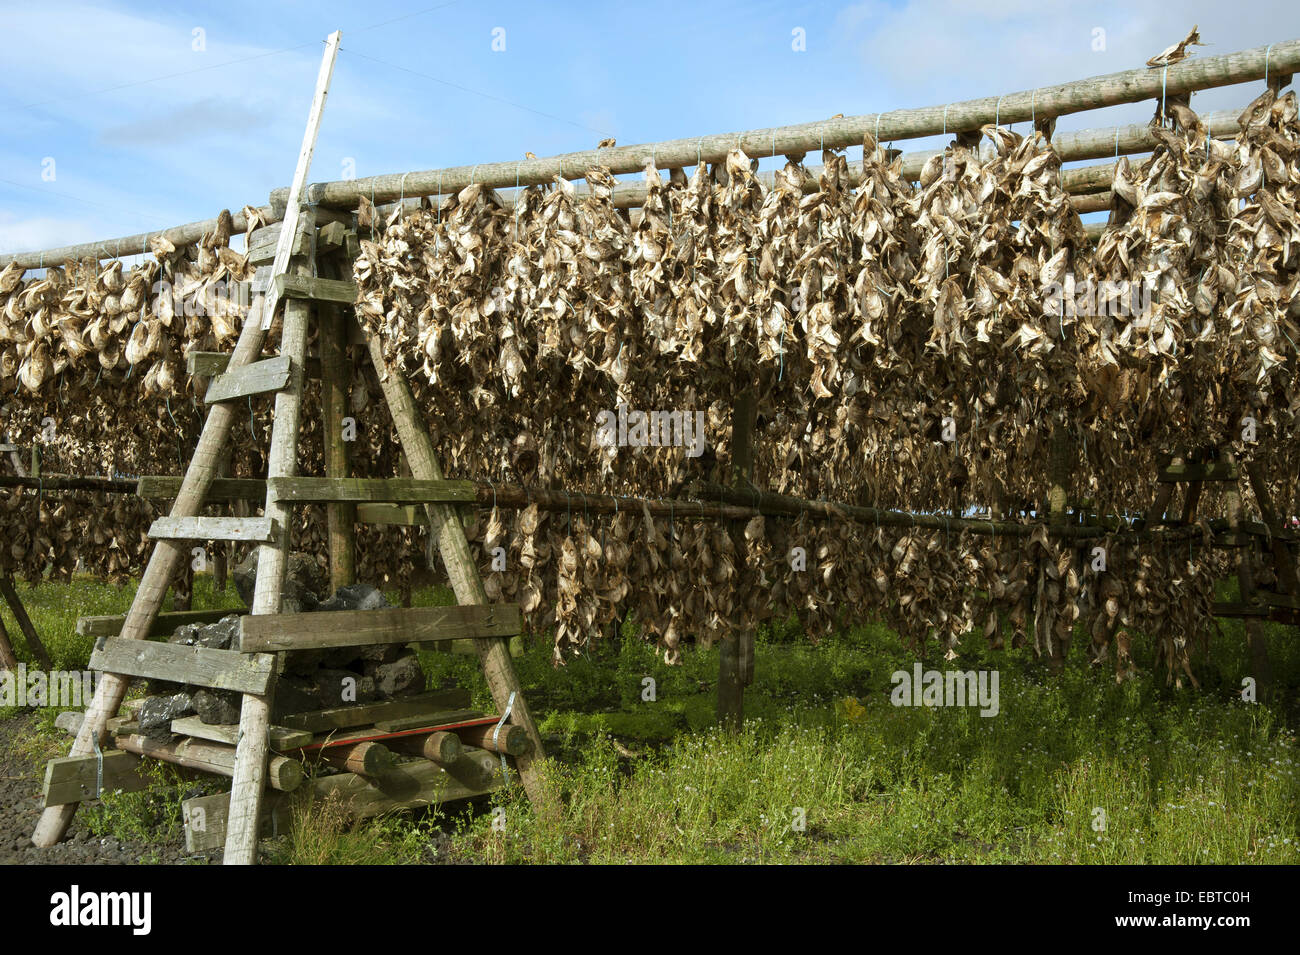 lots of stock fishes hanging at wooden scaffolds, Iceland, Reykjanes Peninsula - Stock Image